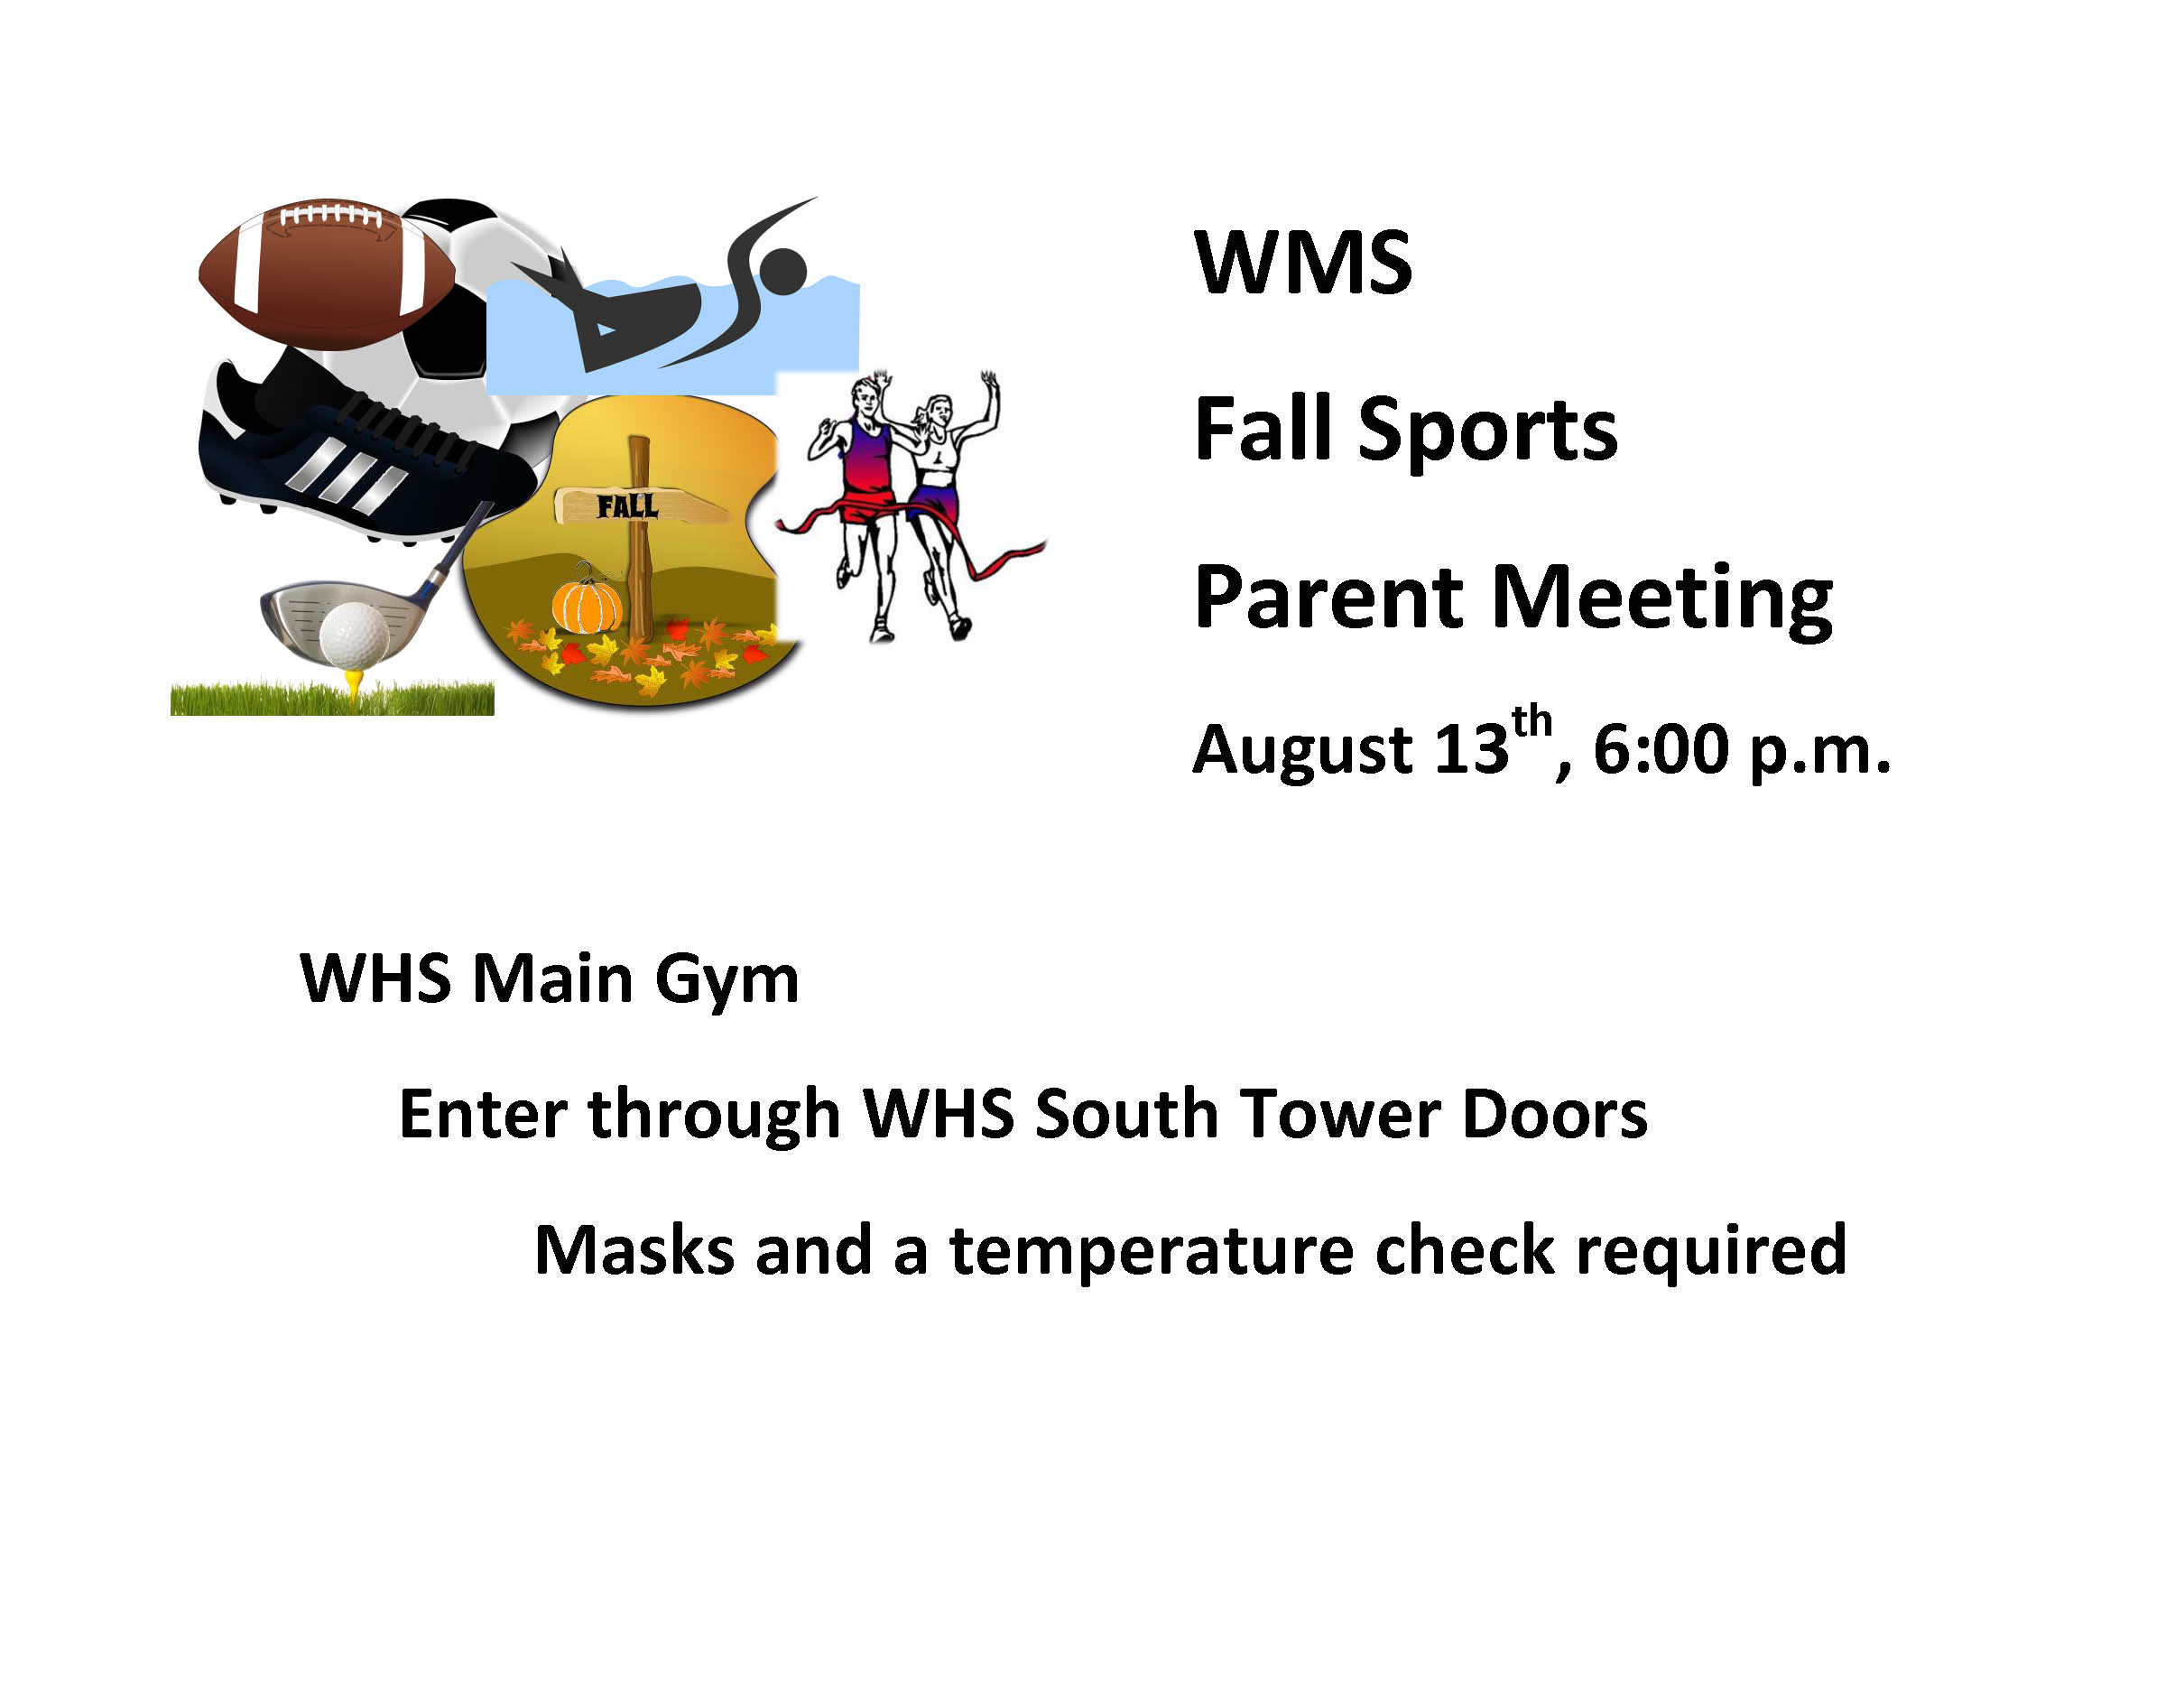 WMS Fall Sports Meeting